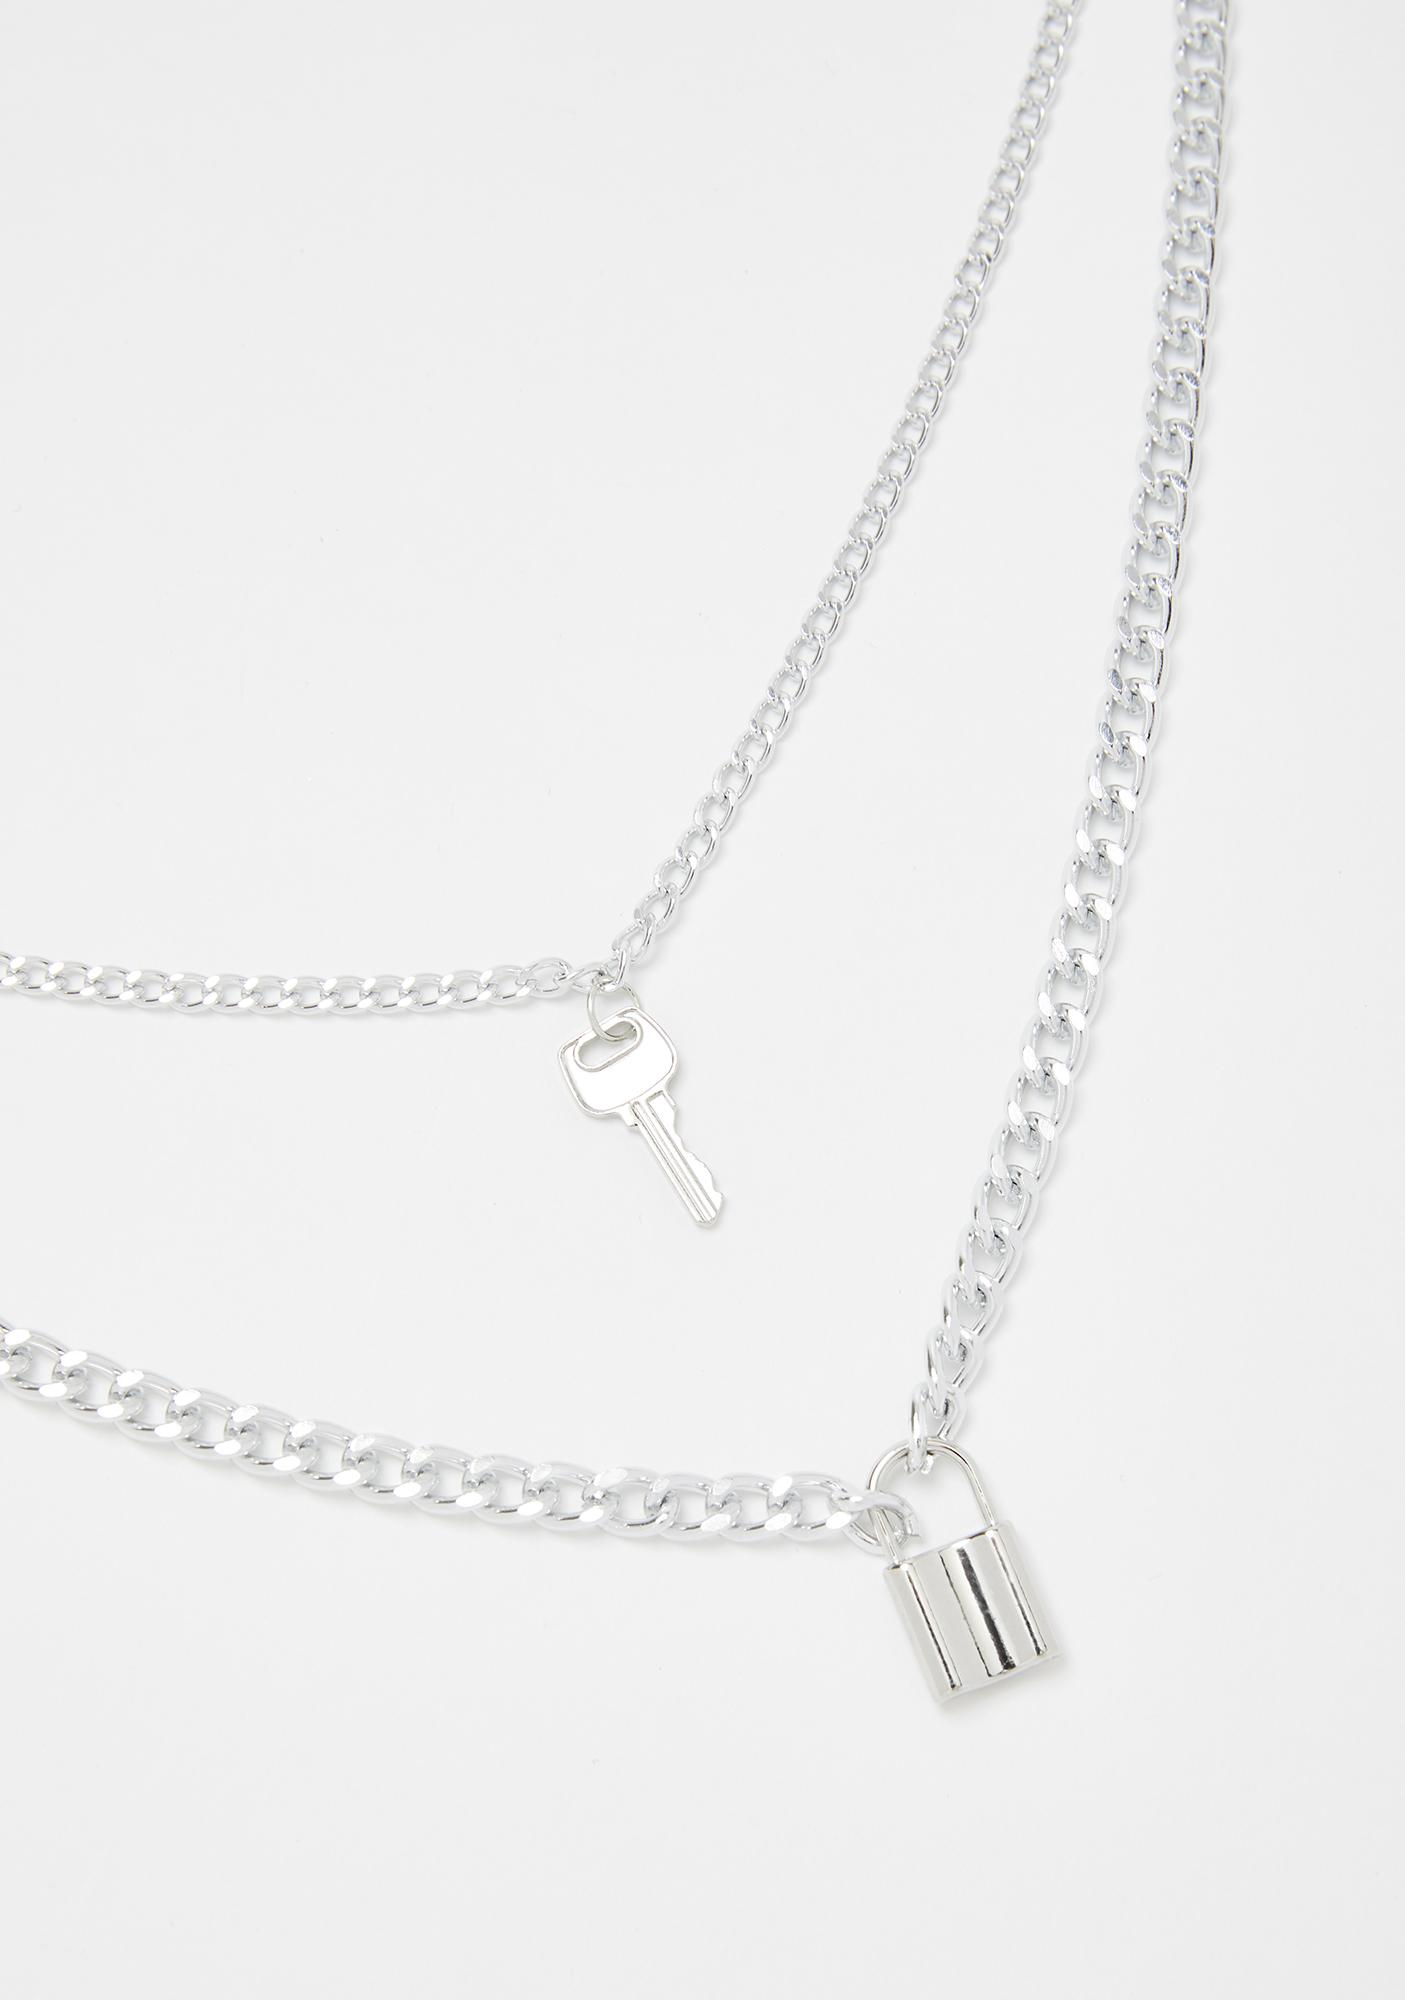 Locked N' Loaded Charm Necklace